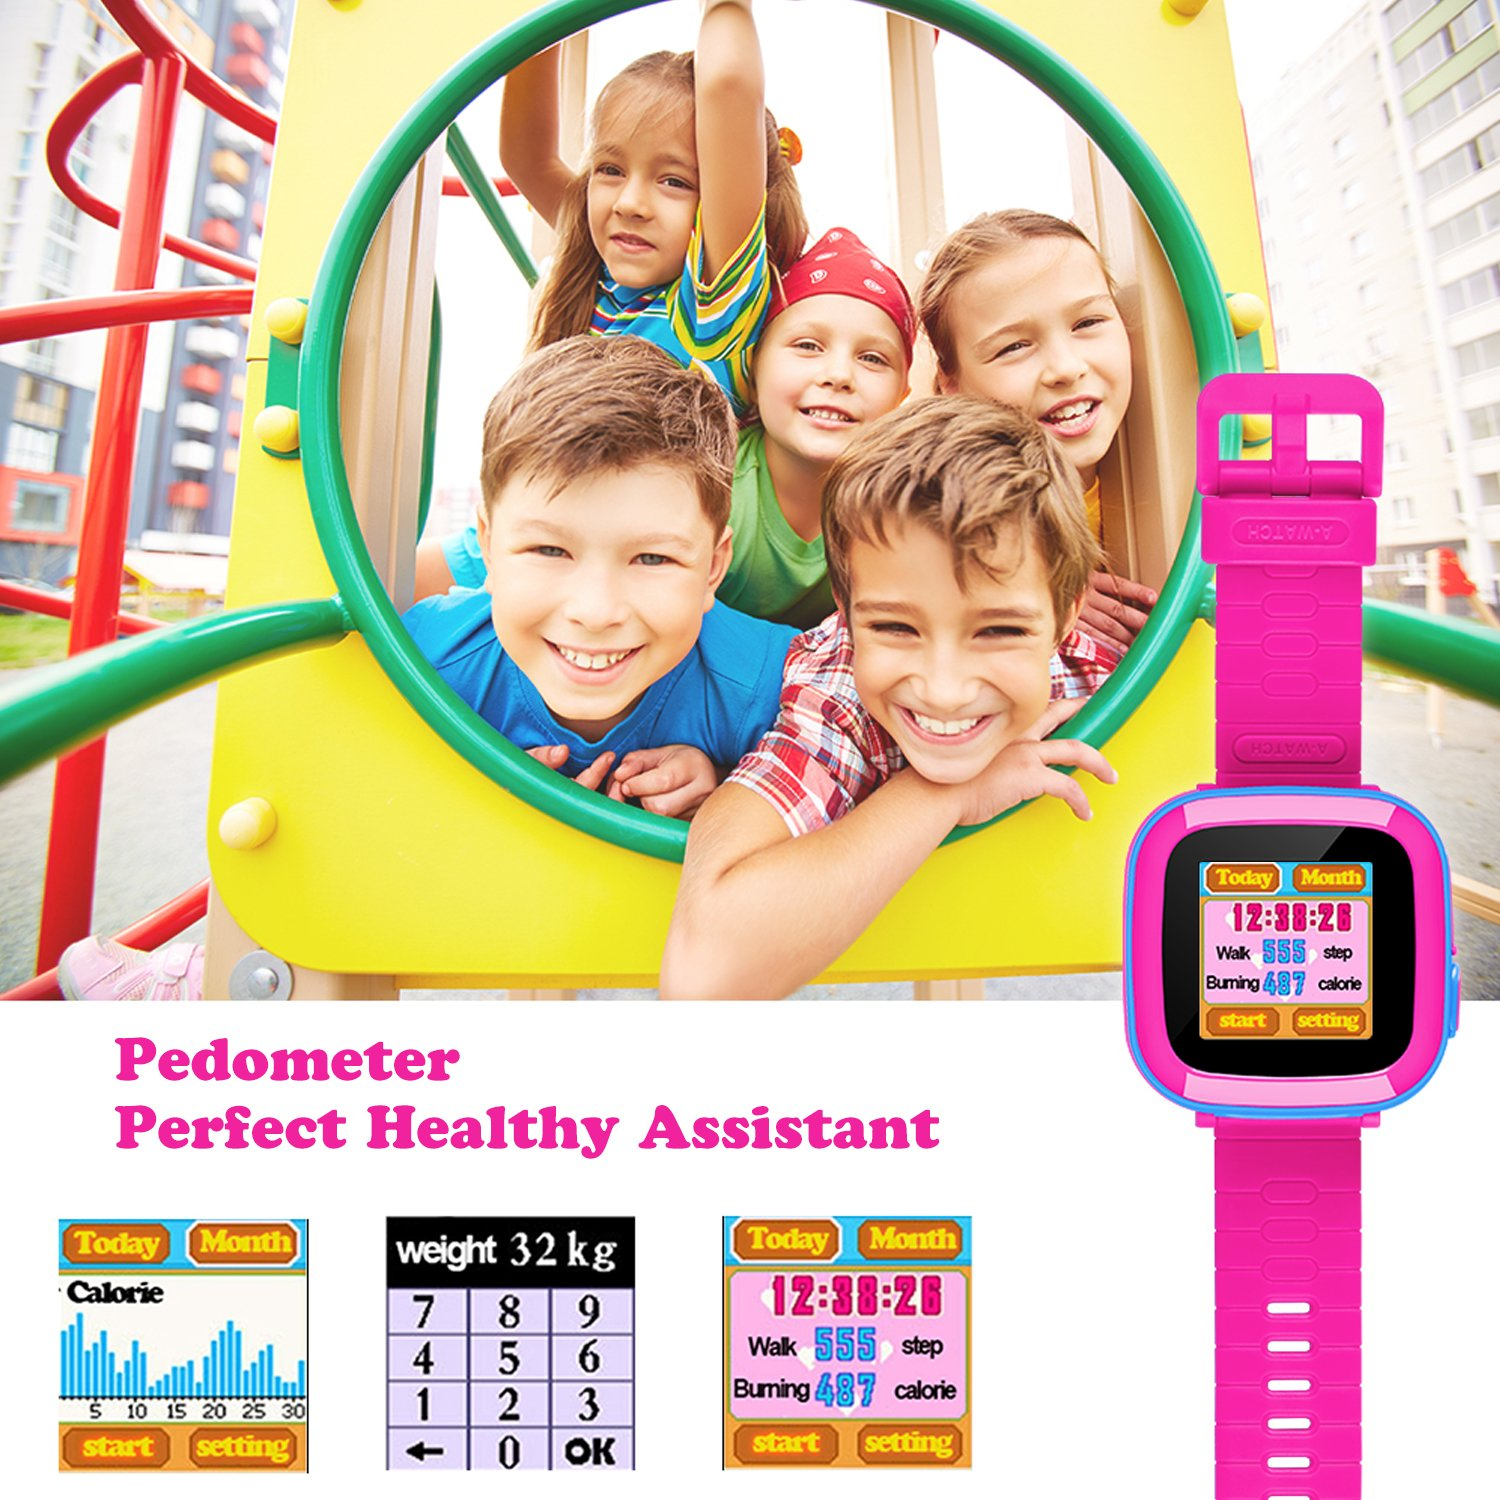 Smart Watch for Kids Girls Boys,Smart Game Watch with Camera Touch Screen Pedometer,Kids Smart Watch Perfect Holiday Birthday Toys Gifts (Joint Blue) by MIMLI (Image #4)